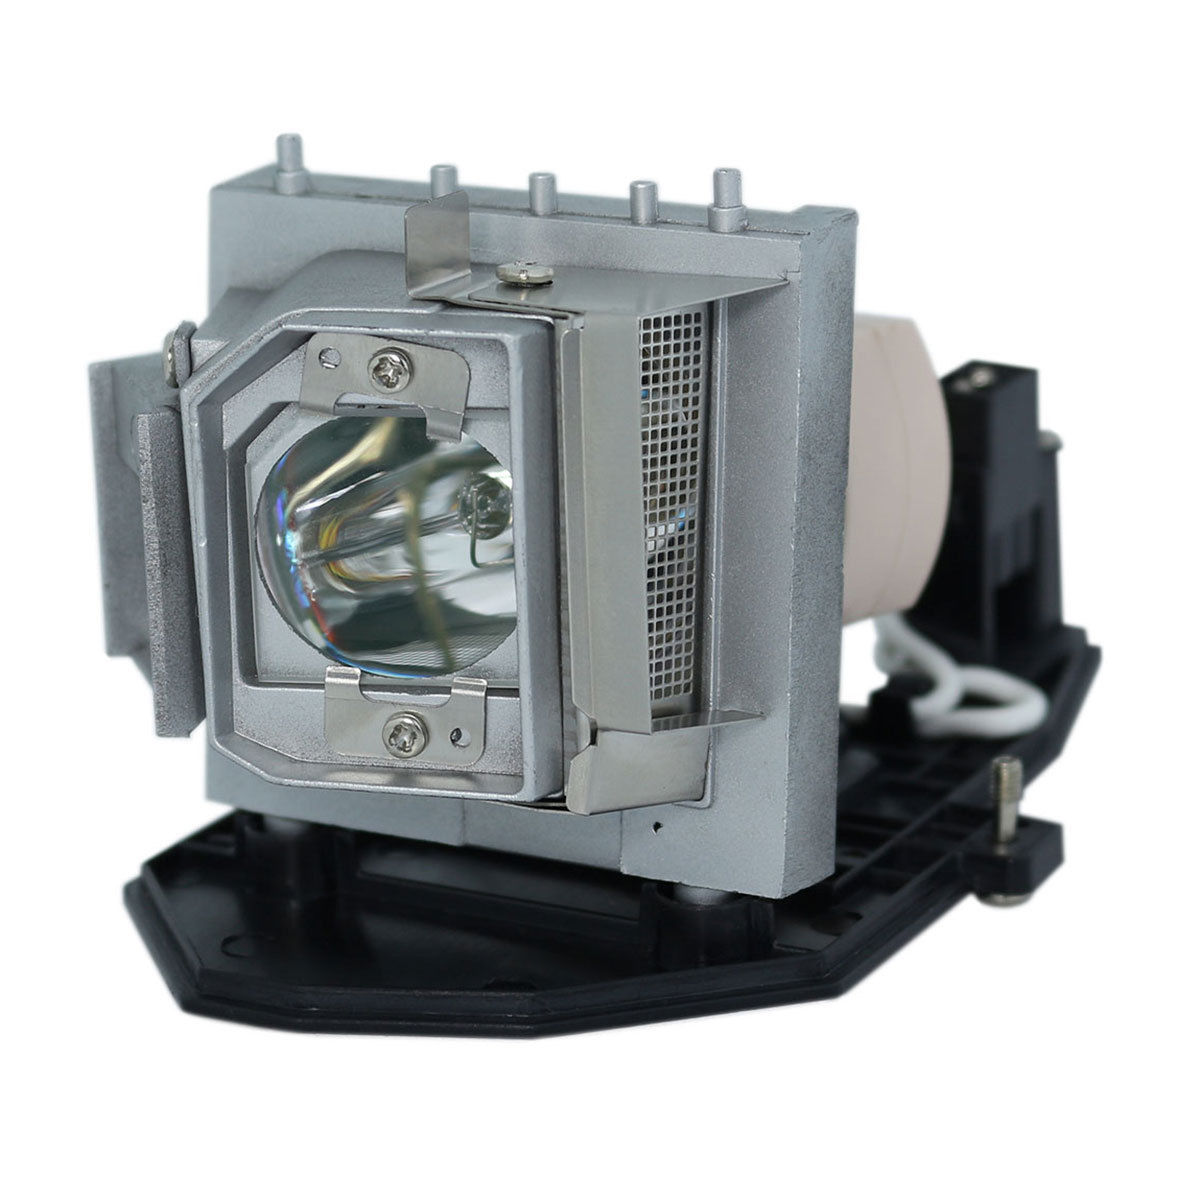 Projector Lamp Bulb BL-FP240C BLFP240C SP.8TU01GC01 for OPTOMA W306ST X306ST With Housing high quality compatible sp 8tu01gc01 projector lamp fits for optoma w306st x306st t766st w731st w736st t762st etc